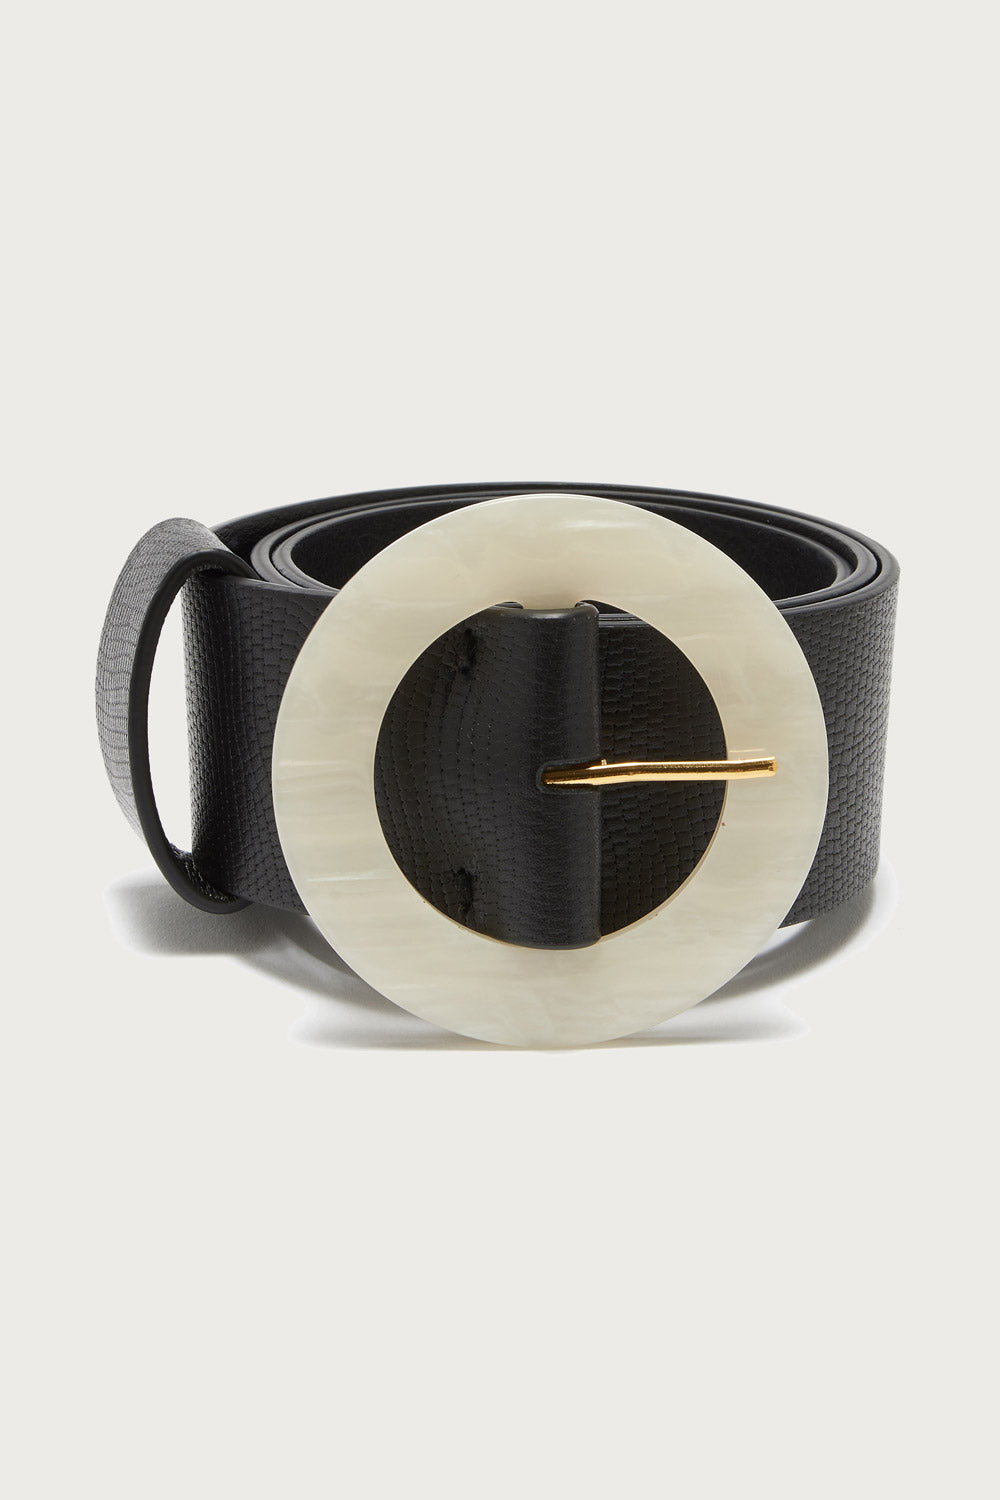 Lizzie Fortunato Louise Belt in Onyx - Vert & Vogue